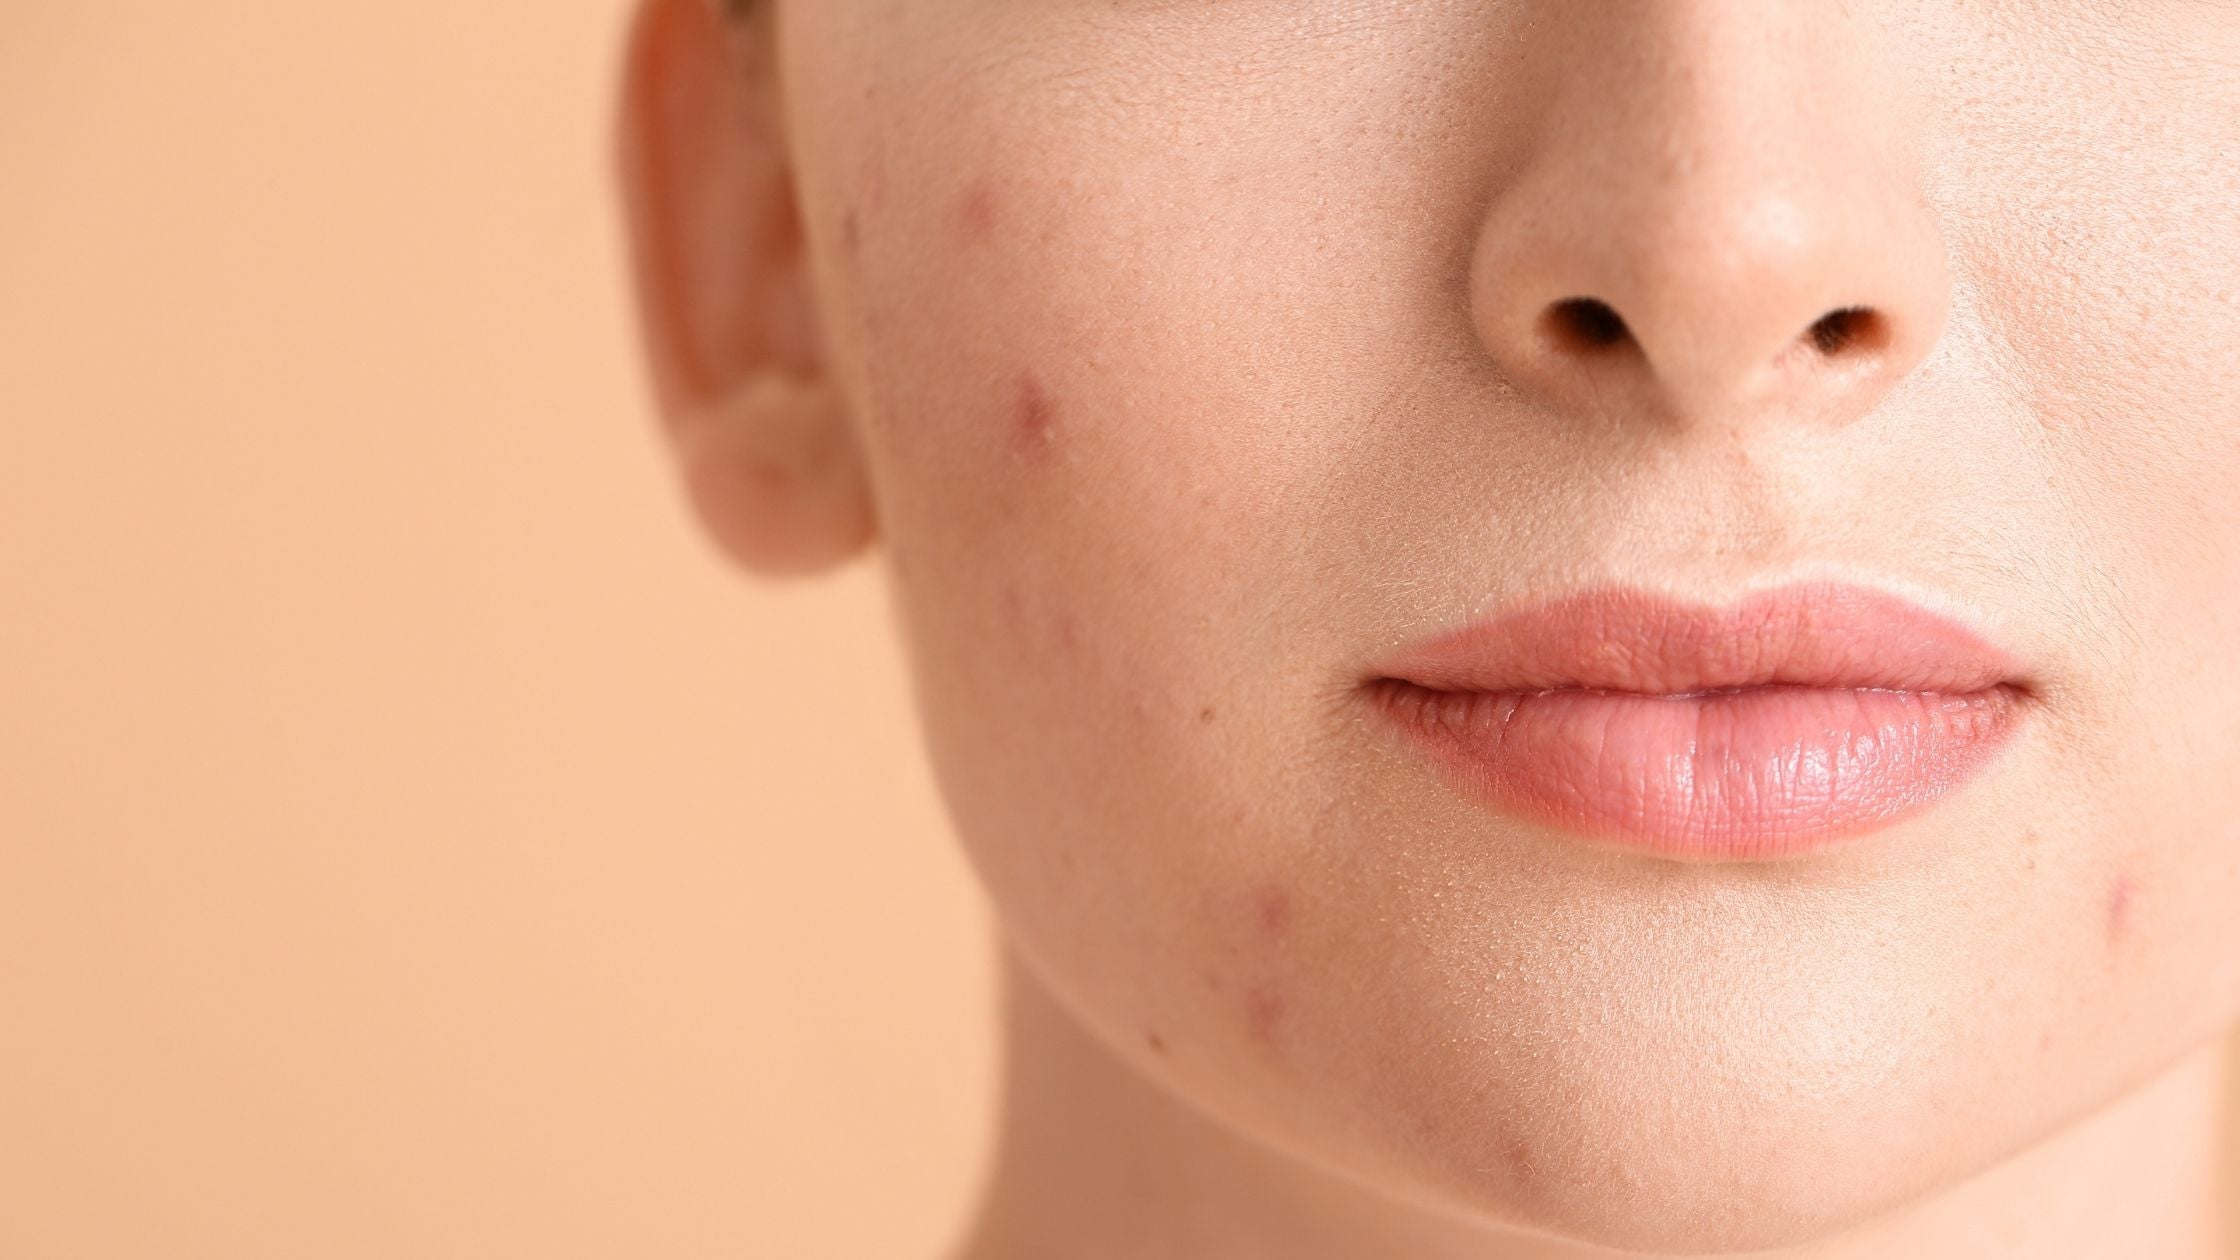 Spot Treatment for acne